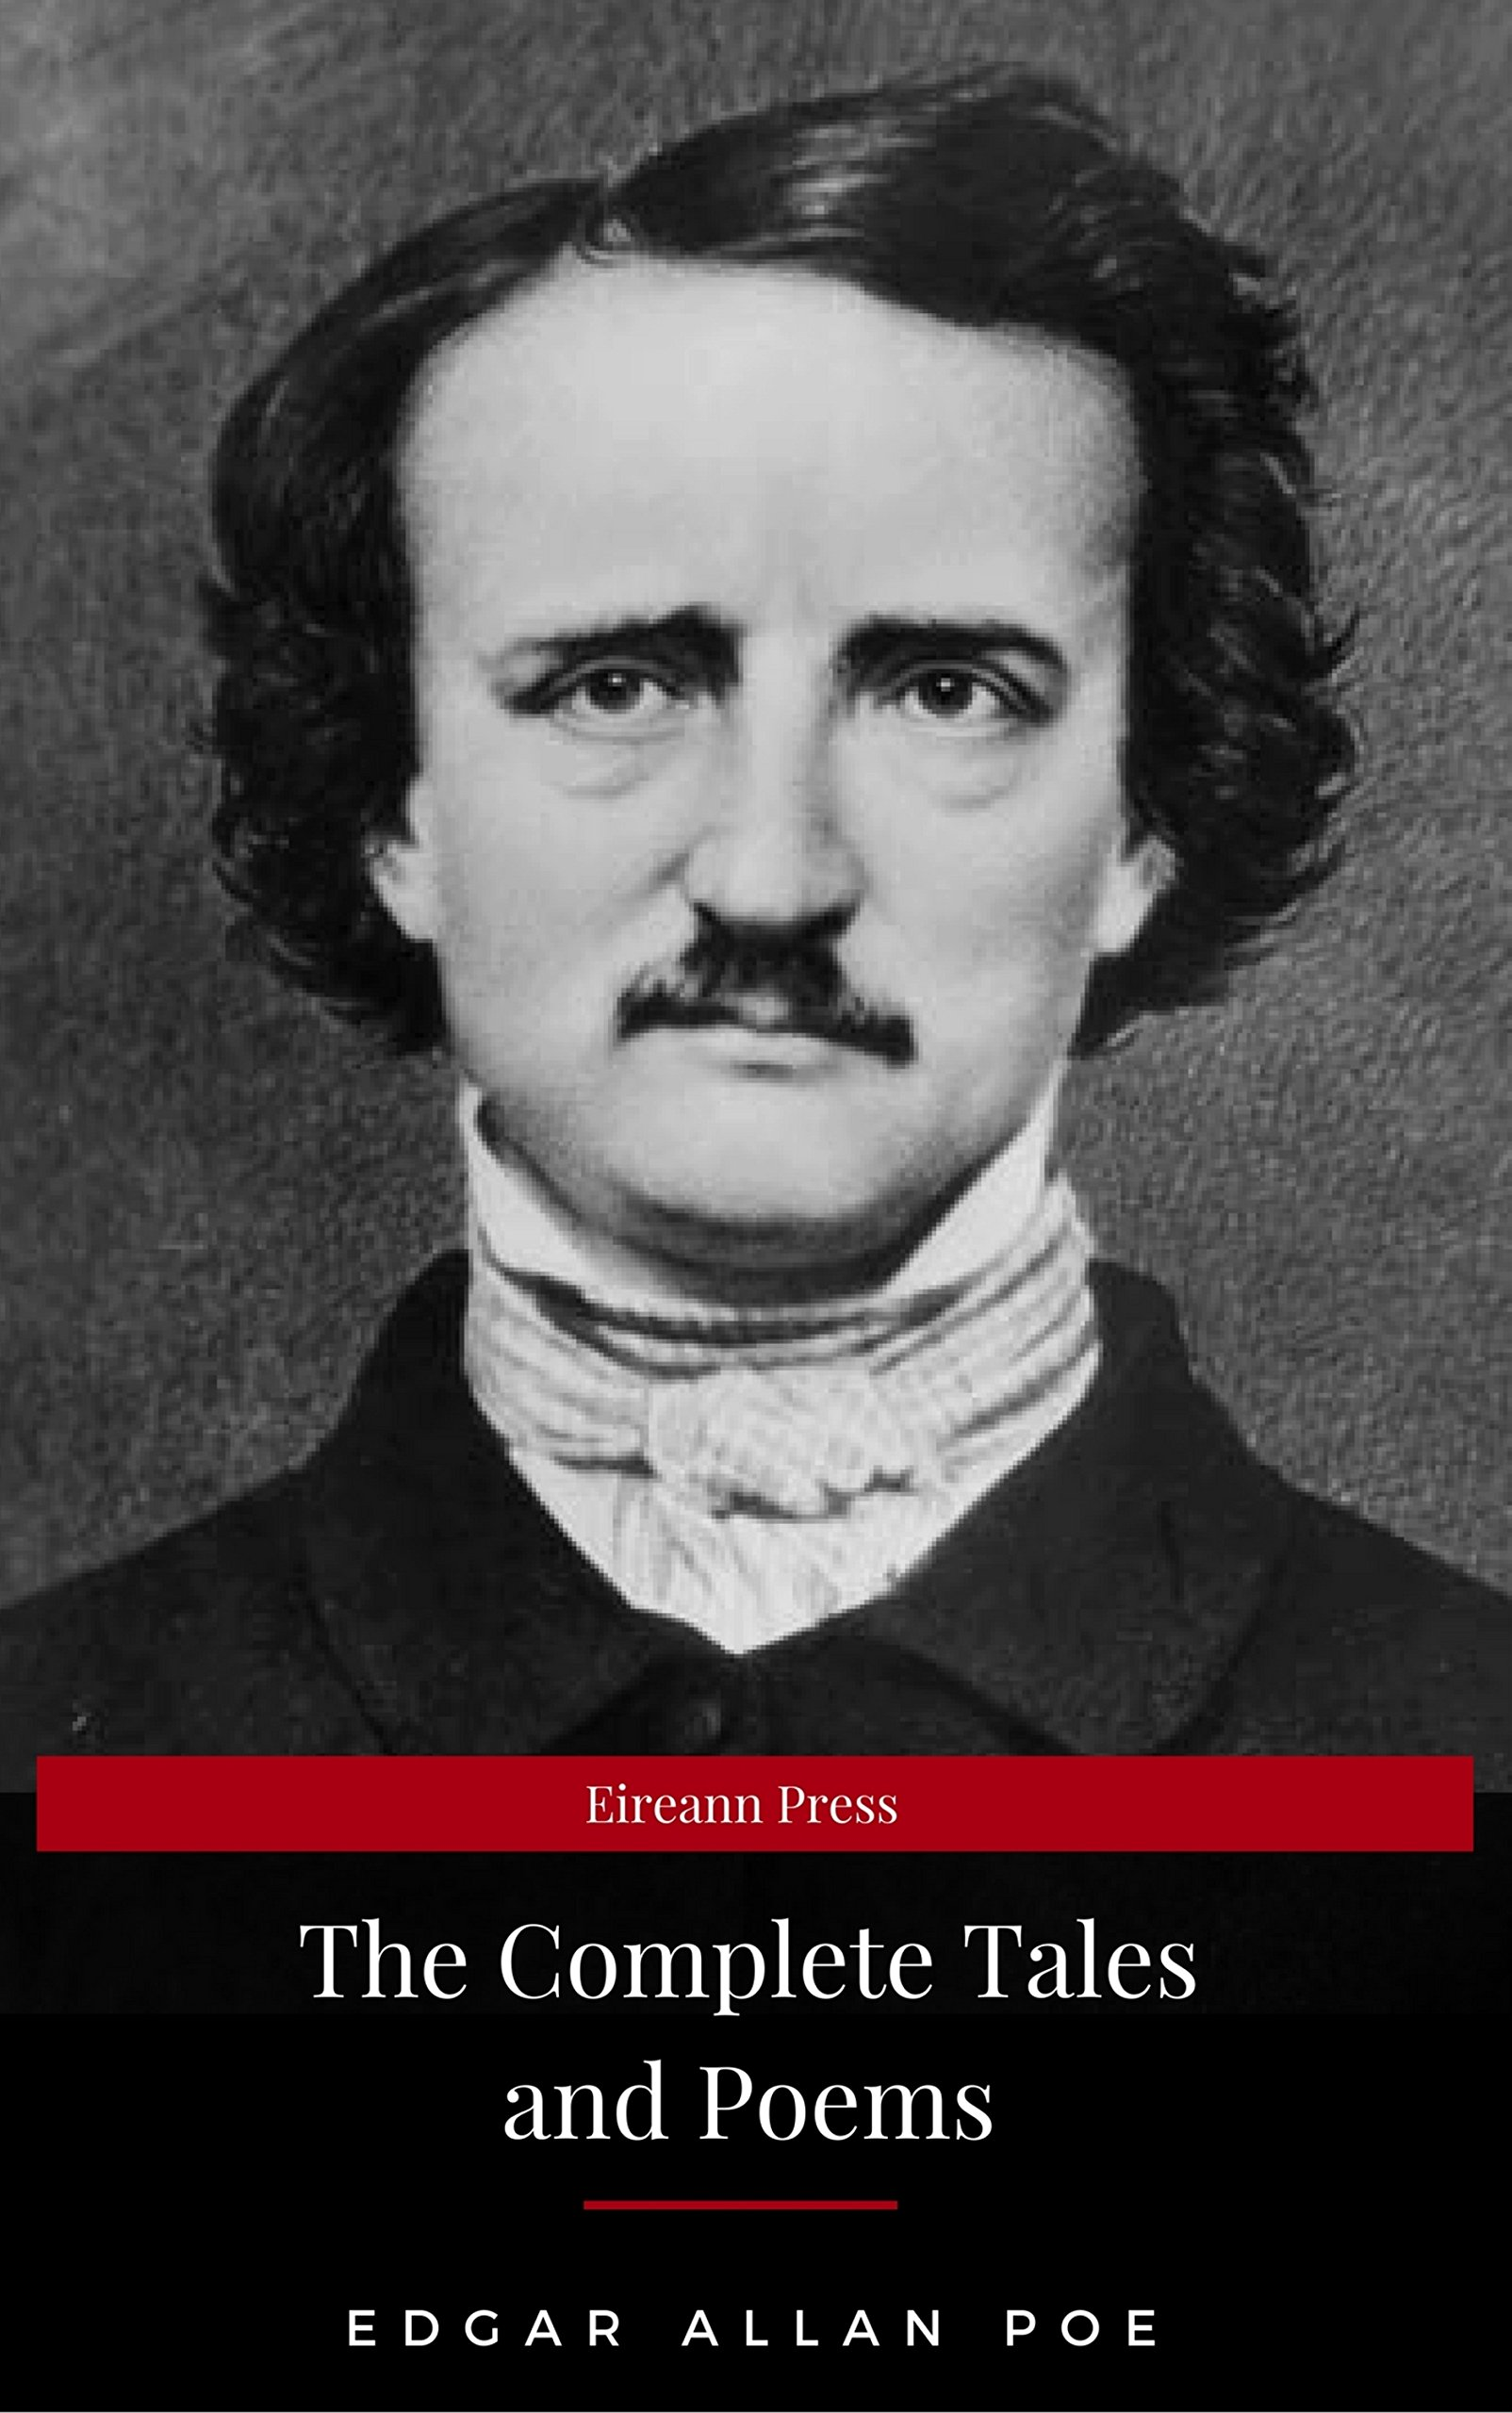 Edgar Allan Poe  Complete Tales And Poems  The Black Cat The Fall Of The House Of Usher The Raven The Masque Of The Red Death...  English Edition